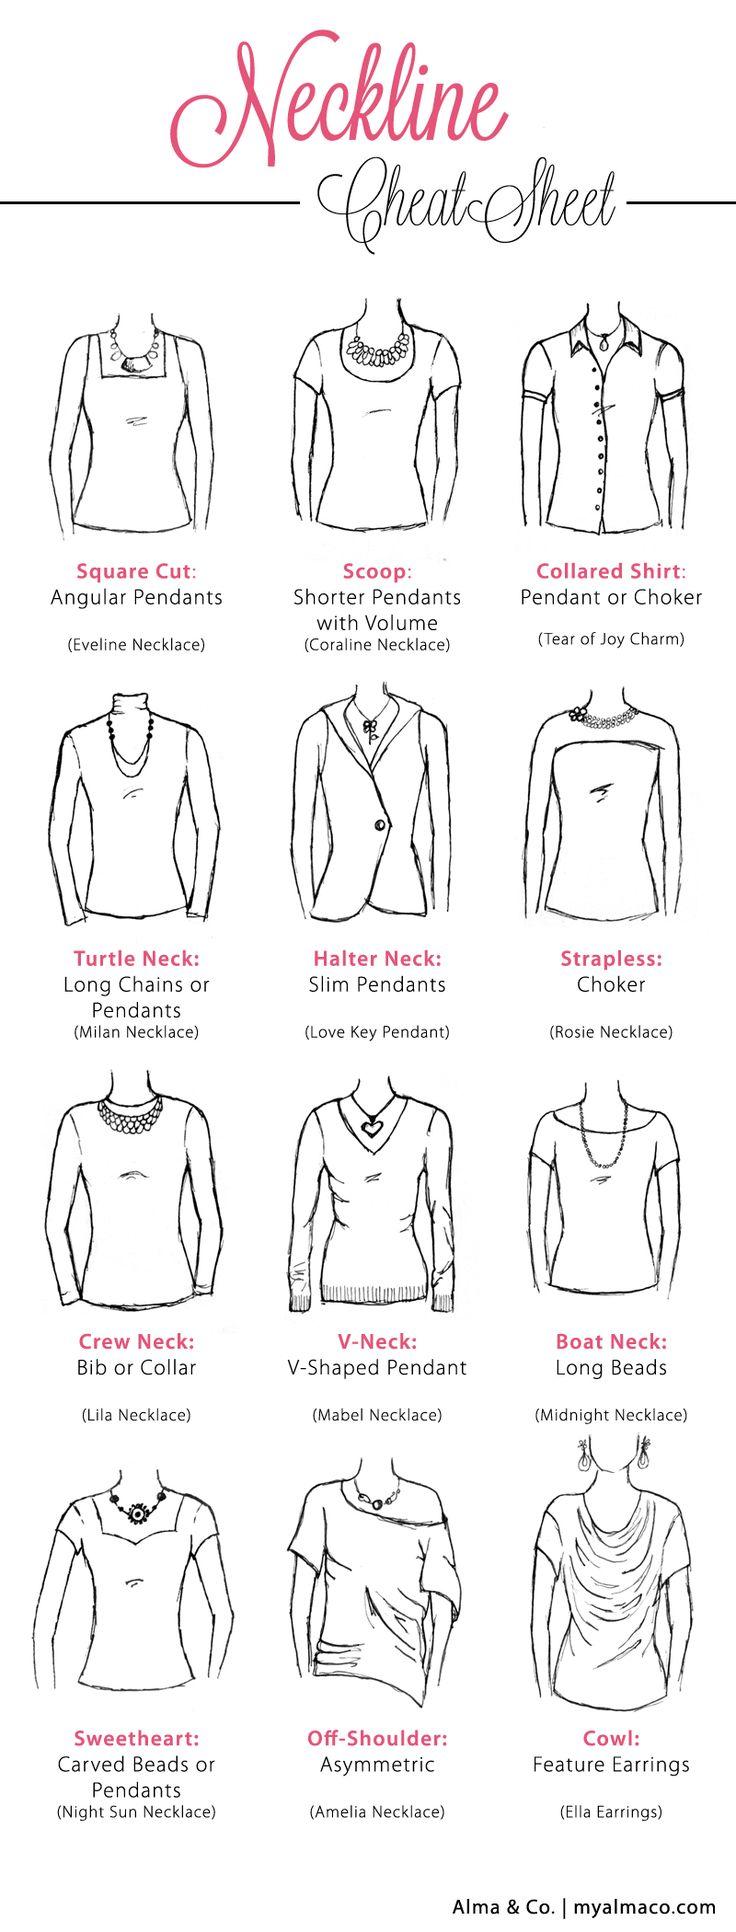 Neckline Cheat Sheet   Alma & Co.   How to pair your favorite dress with that perfect piece of jewerly